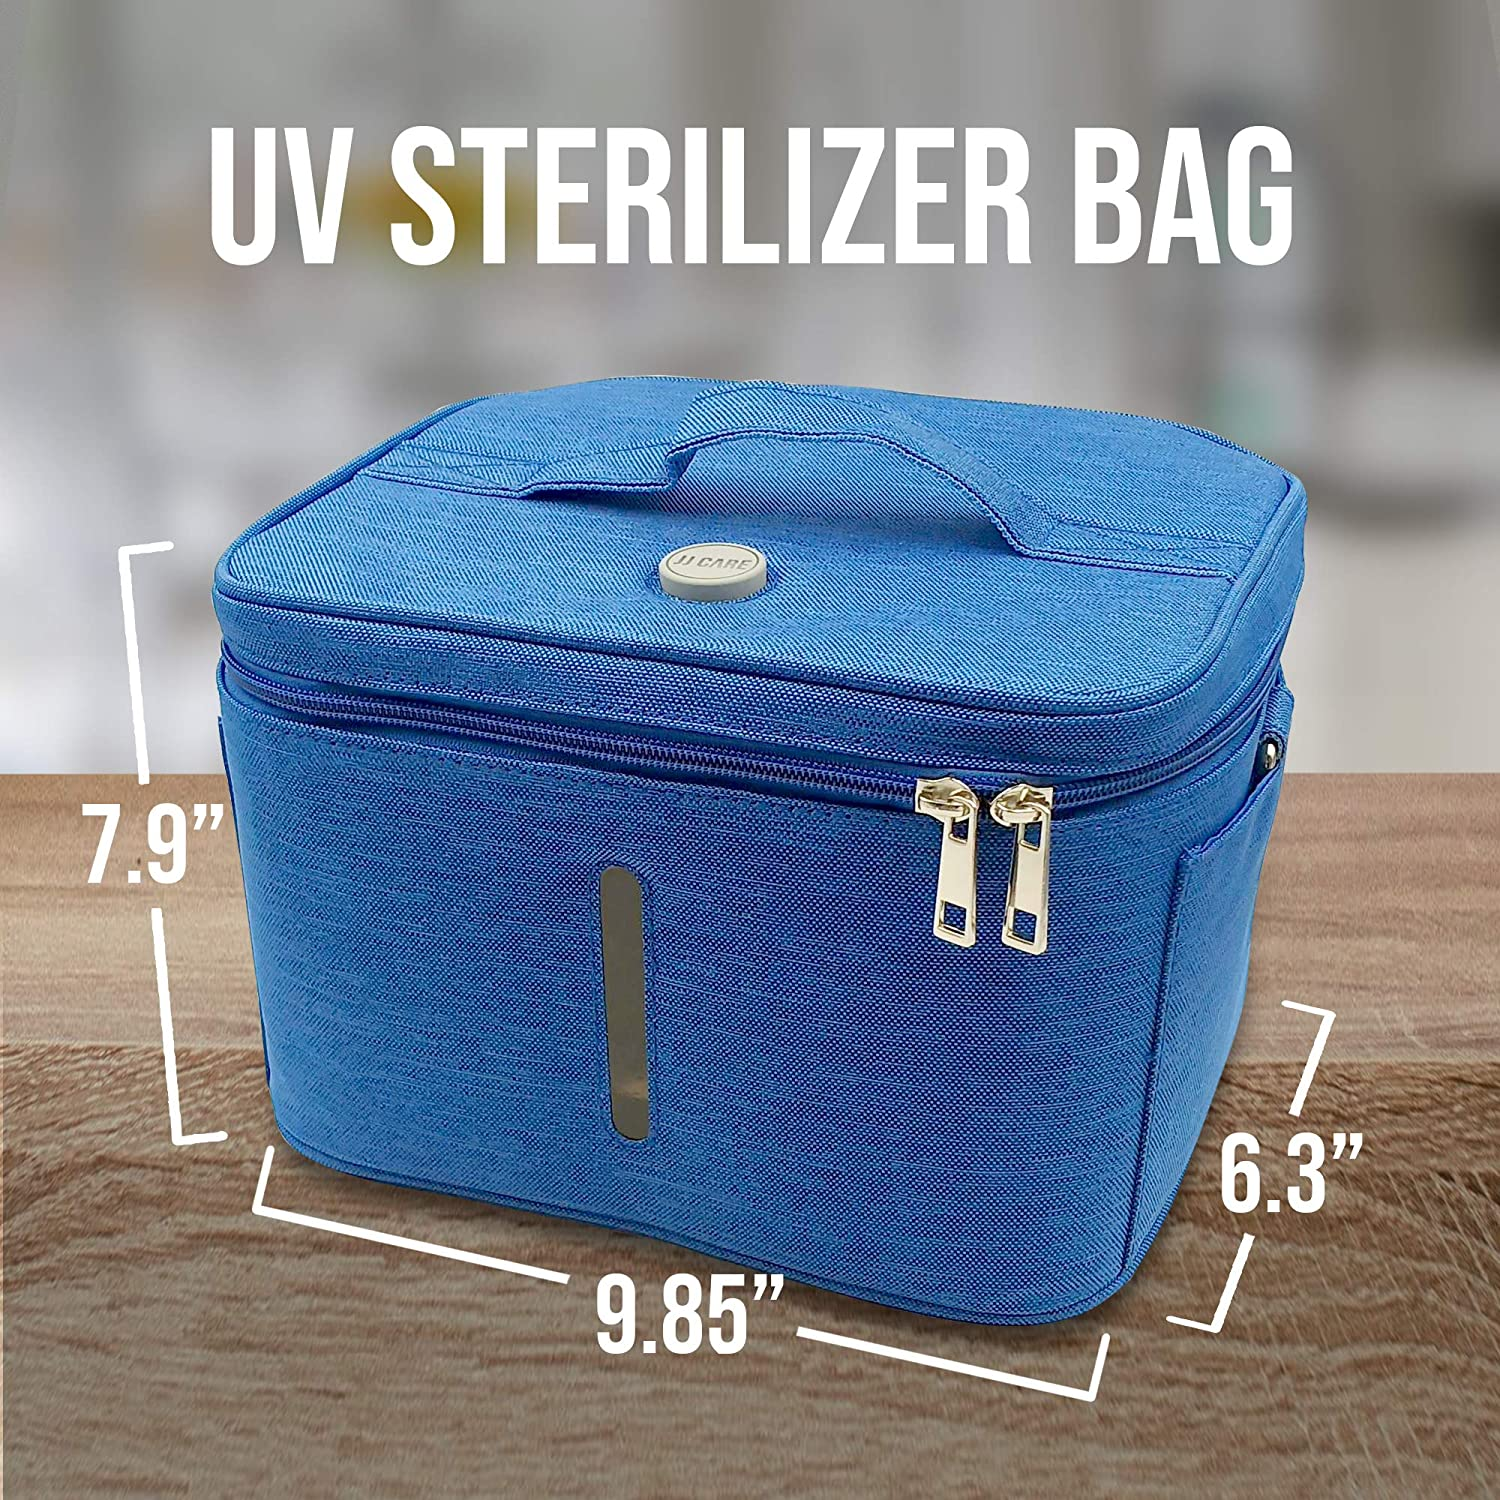 Smartphones Ozone Technology Perfect for Masks Keys Nuvitamed Glasses UVC Sterilizer Lamp Eliminates 99.9/% of Viruses and Bacteria Designed in Italy Portable UV Sterilizer Bag